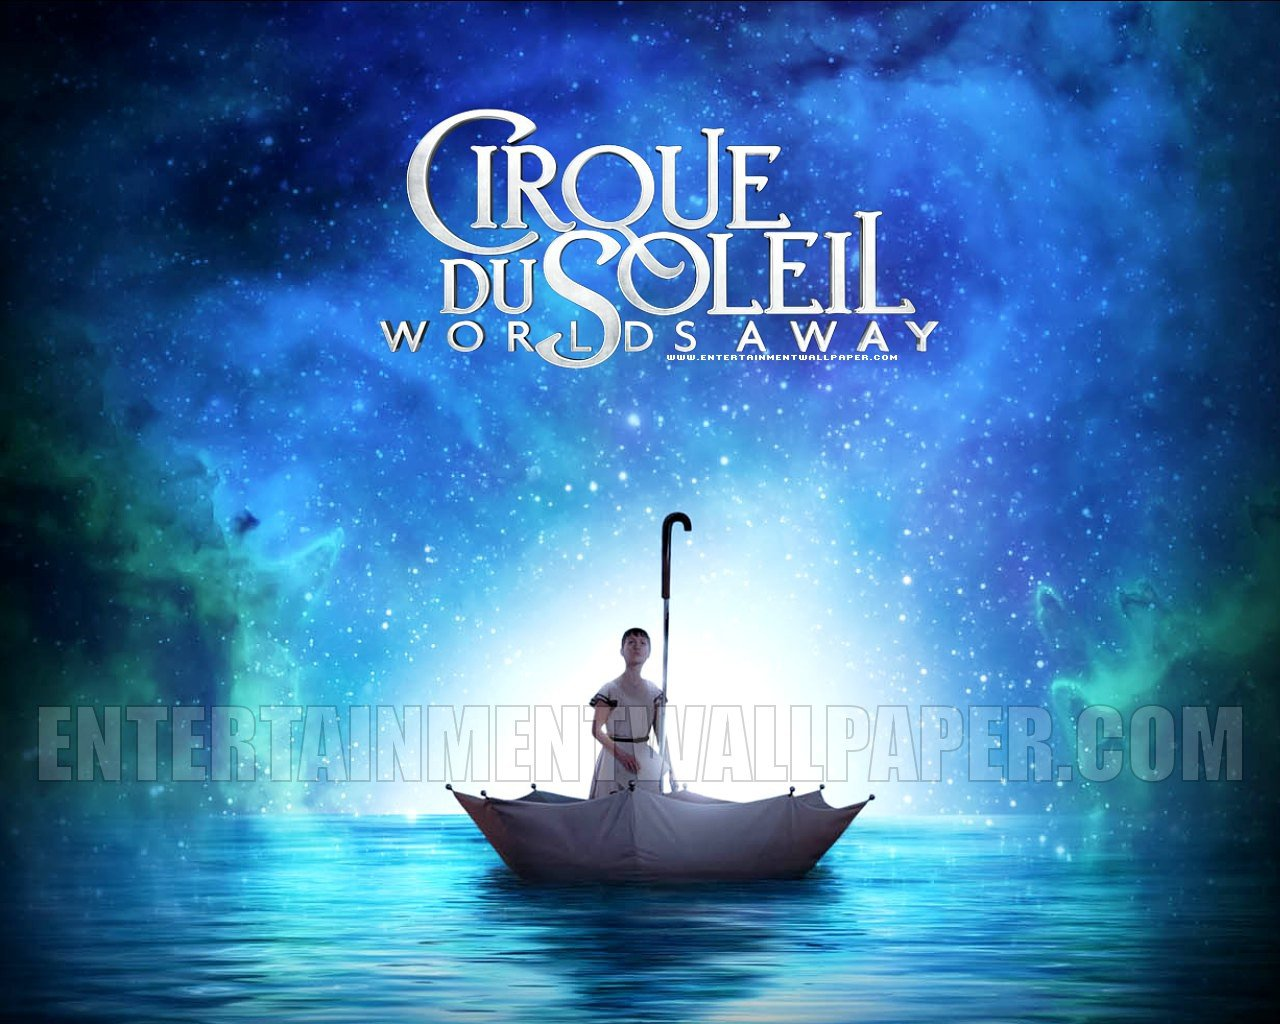 Cirque Du Soleil Worlds Away Wallpaper HD Wallpapers 1280x1024